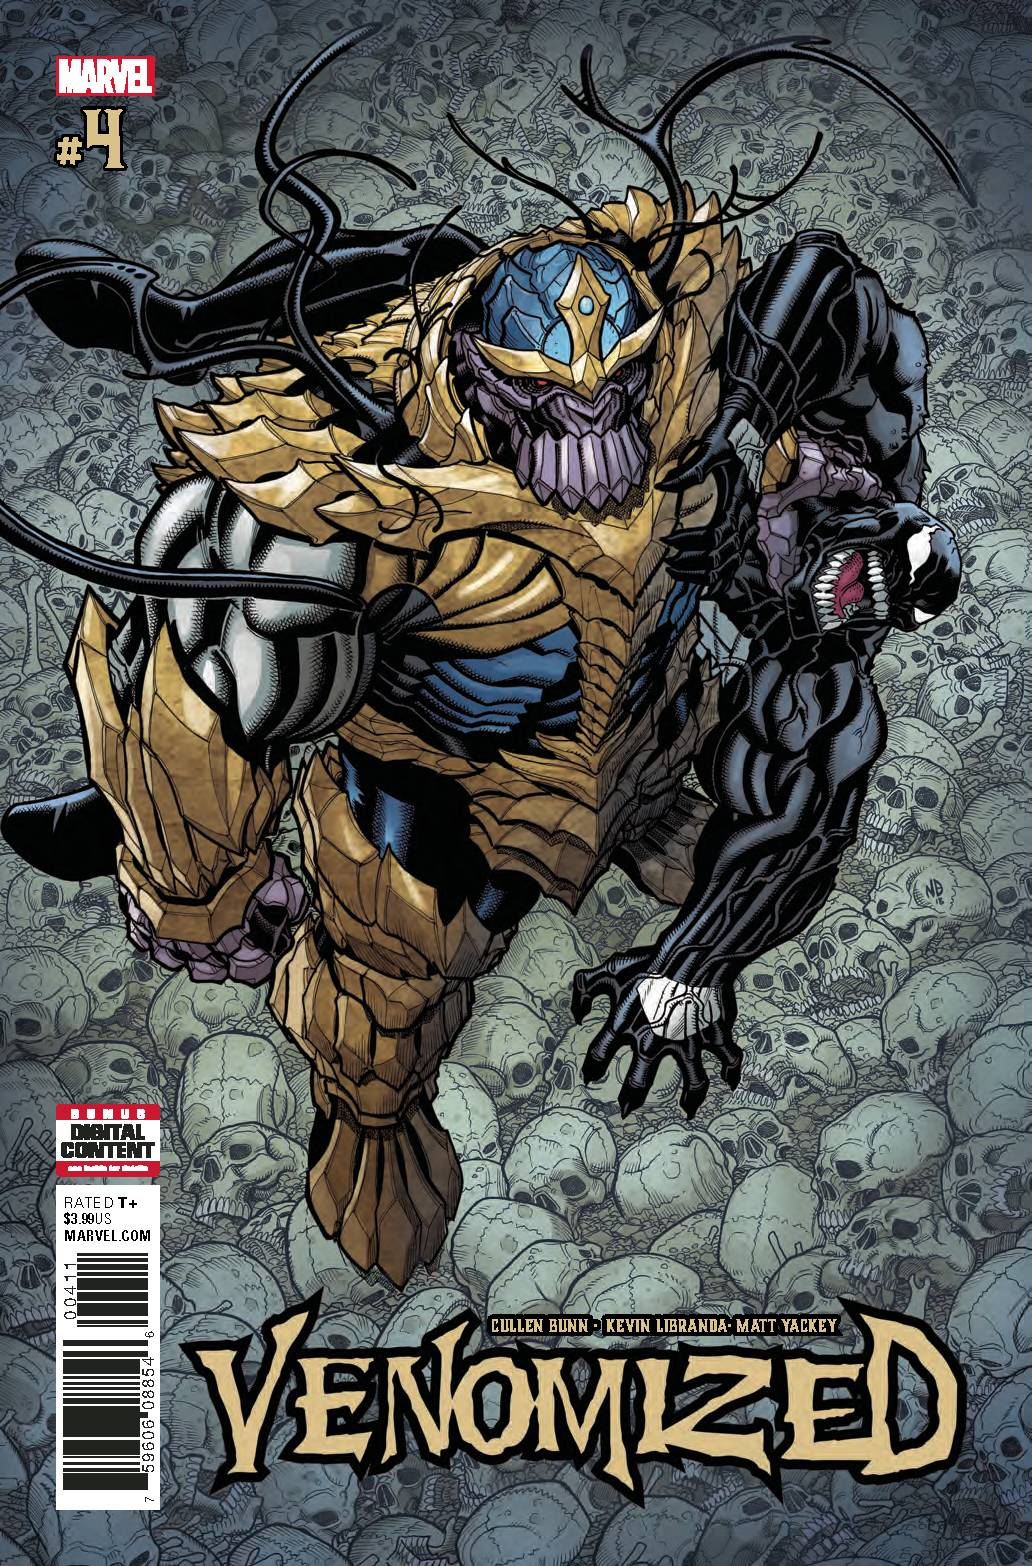 VENOMIZED #4 (OF 5)